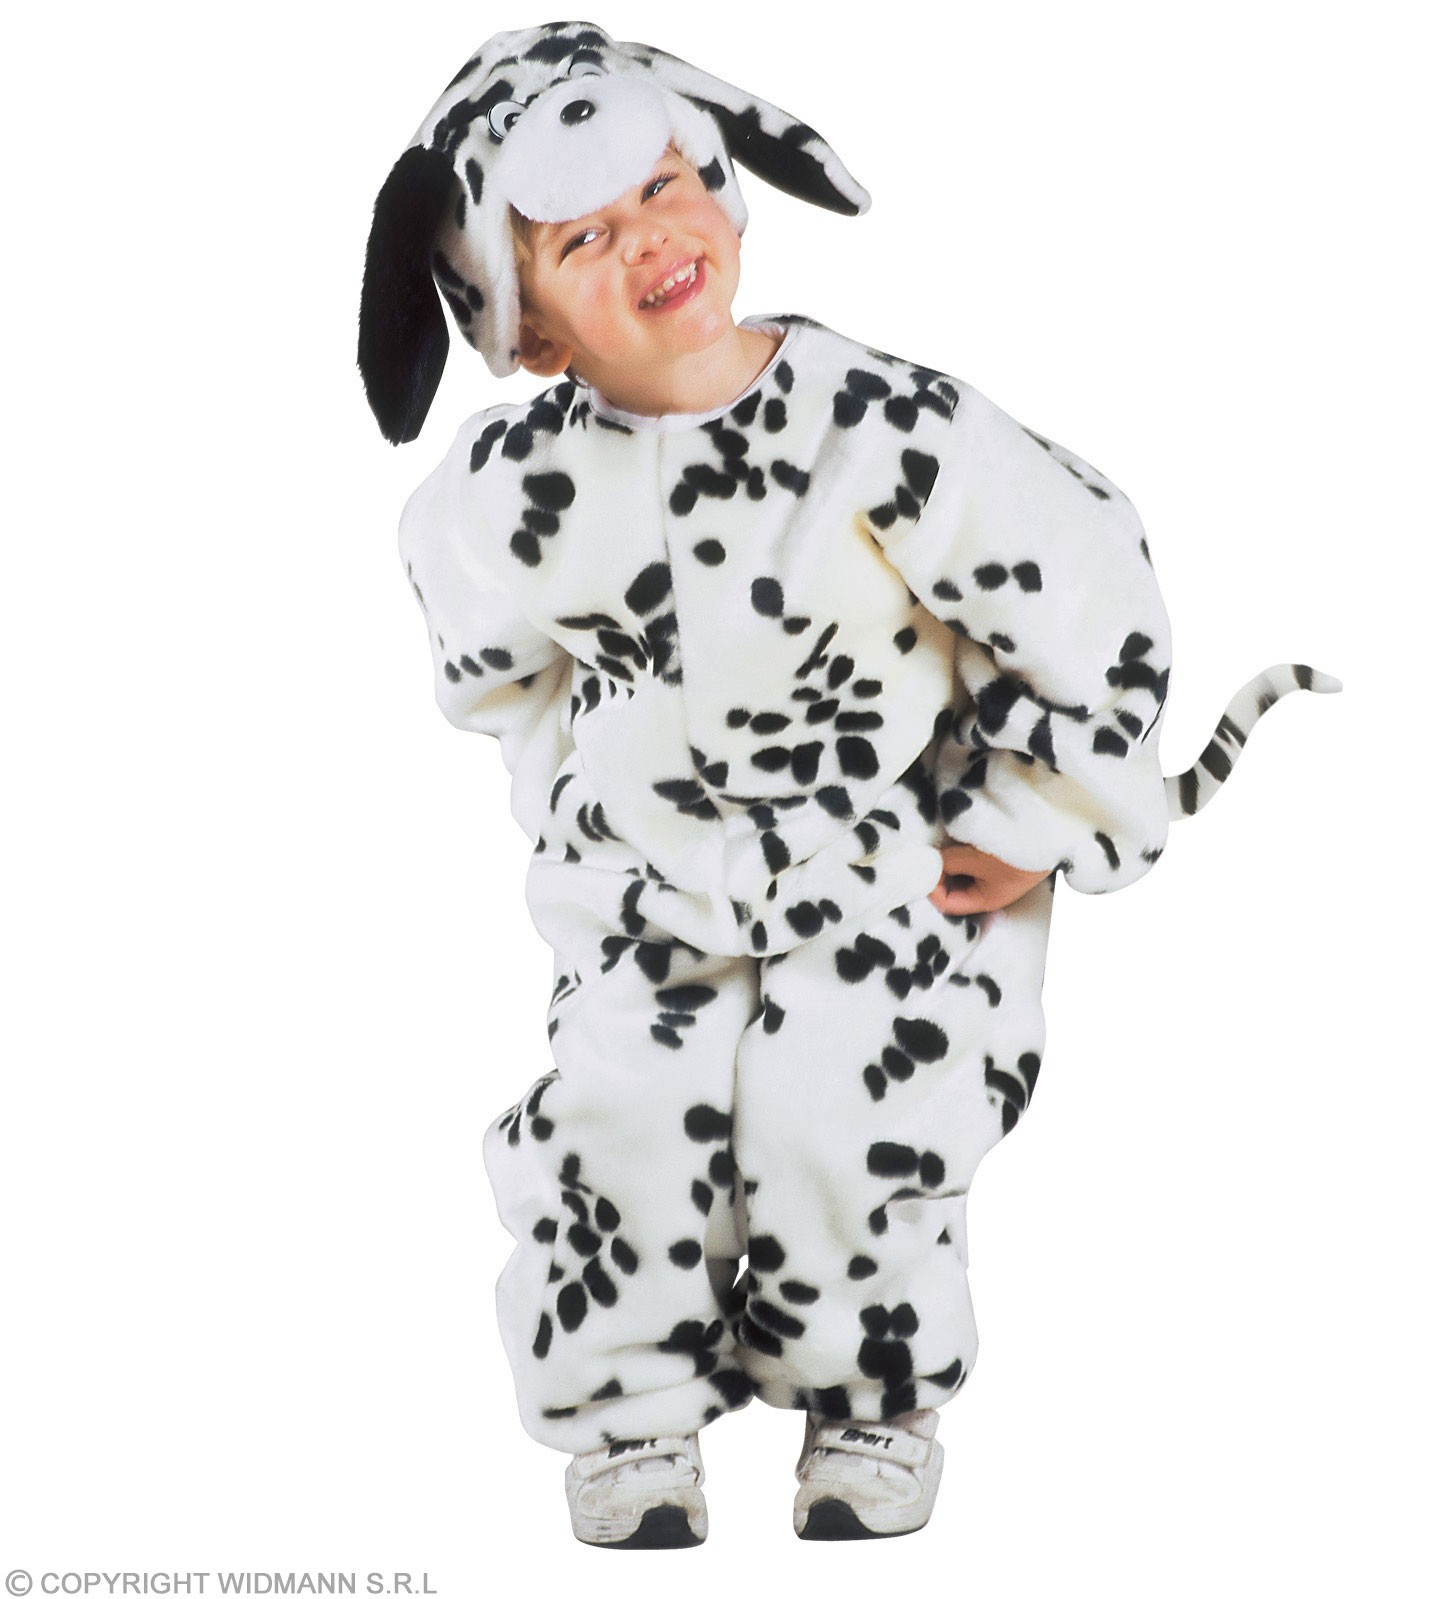 Plush Dalmatian - Jumpsuit, Headpiece  Kids Age 3-4 (Animals)